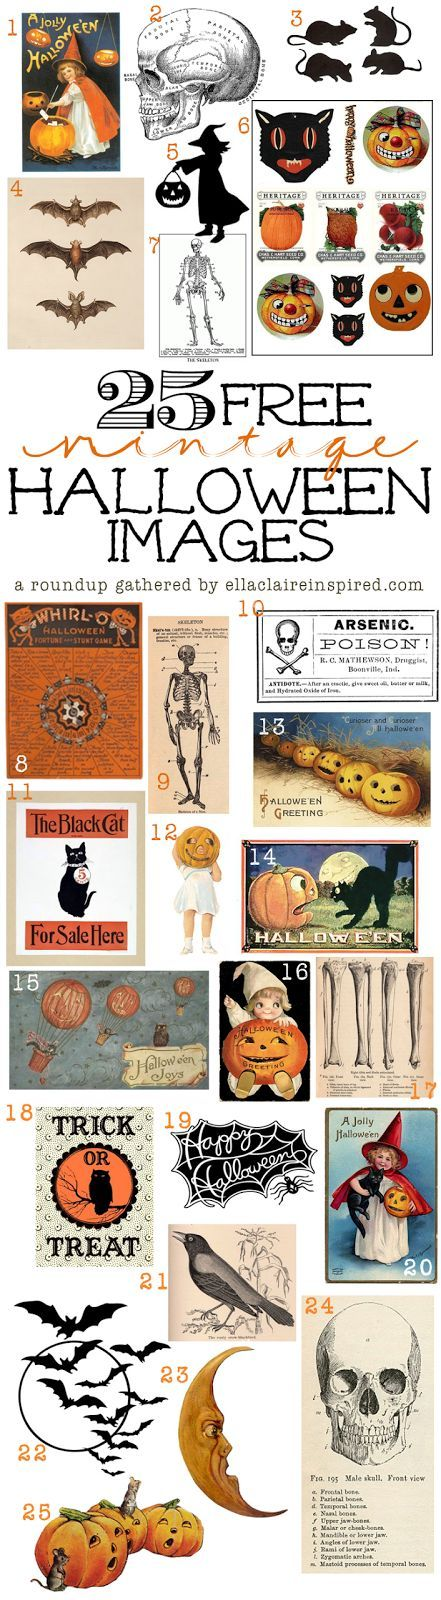 °°25 FREE Fabulous Vintage Halloween Images for you to download and use for all of your Halloween crafts and decor°°